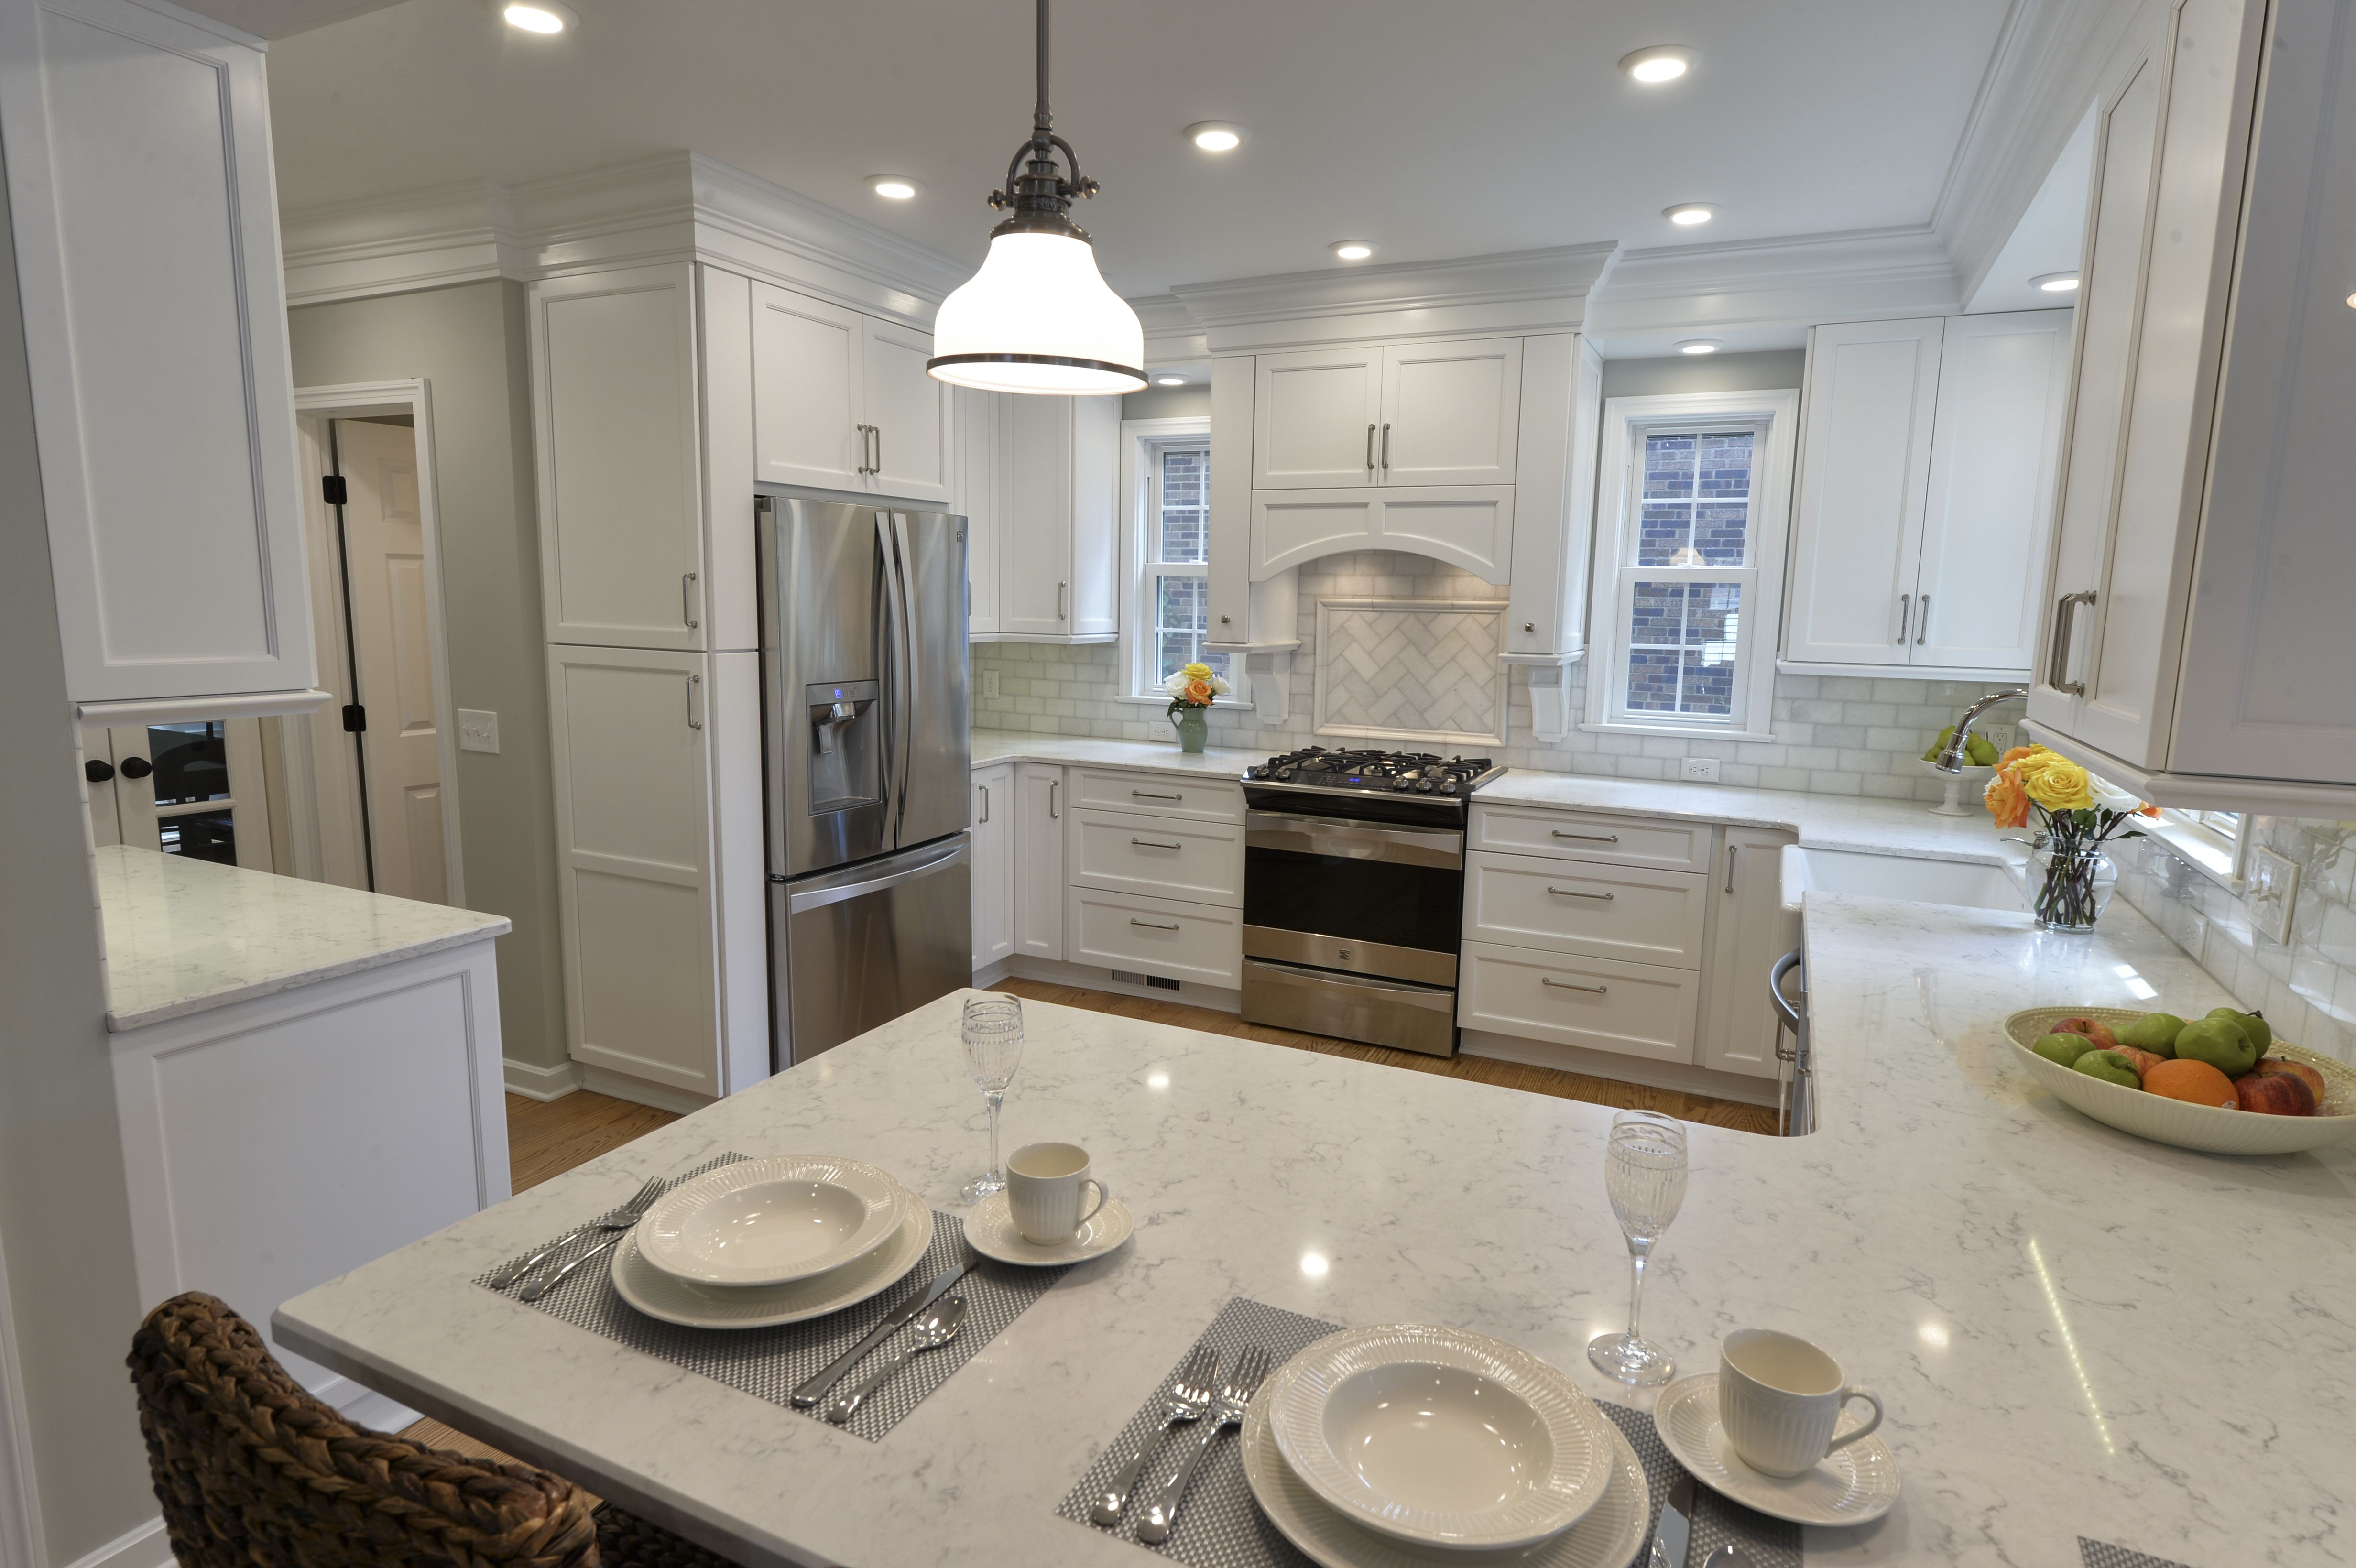 kitchen kitchens remodel how ideas small a to much renovation design for